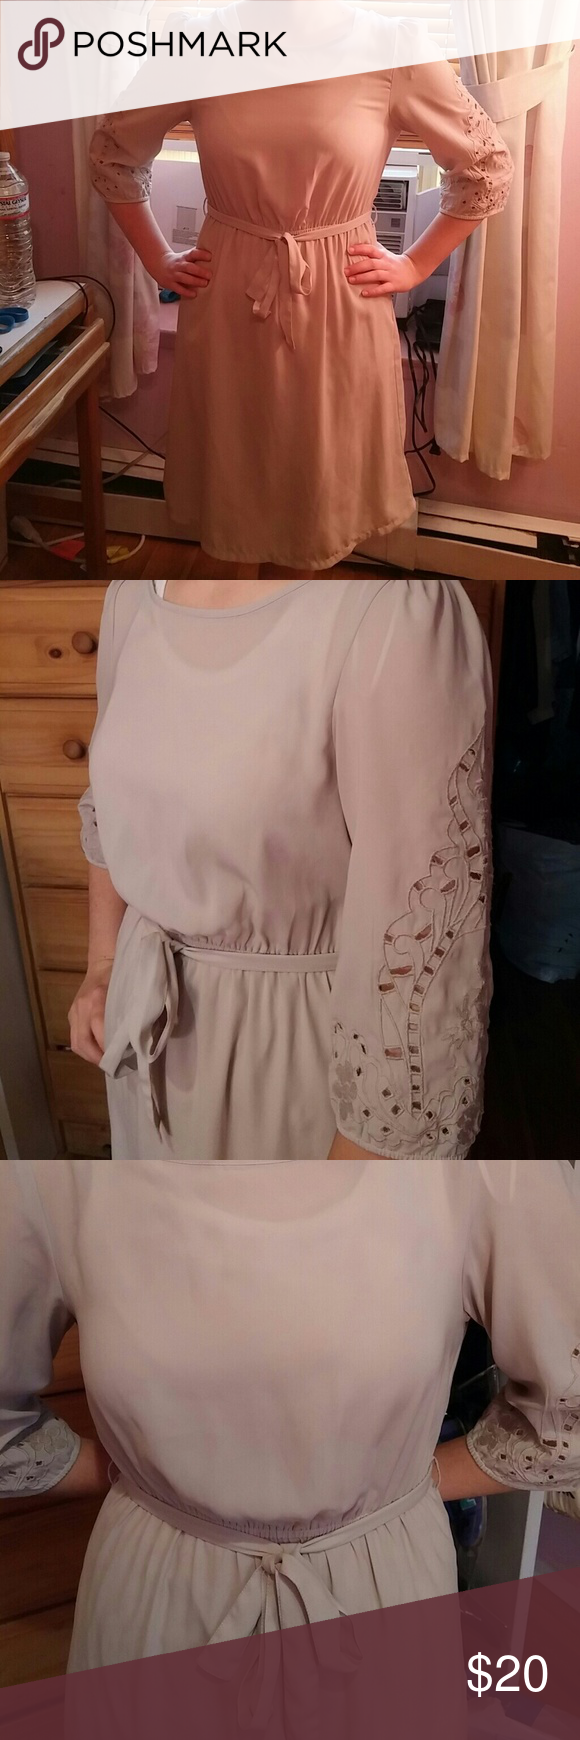 """Summery h&m dress Great condition barely worn Size 6 Elastic waist 13""""- 18.75"""" Beige/sand color Summery and light may want to wear a slip under Length approx 38"""" H&M Dresses Long Sleeve"""